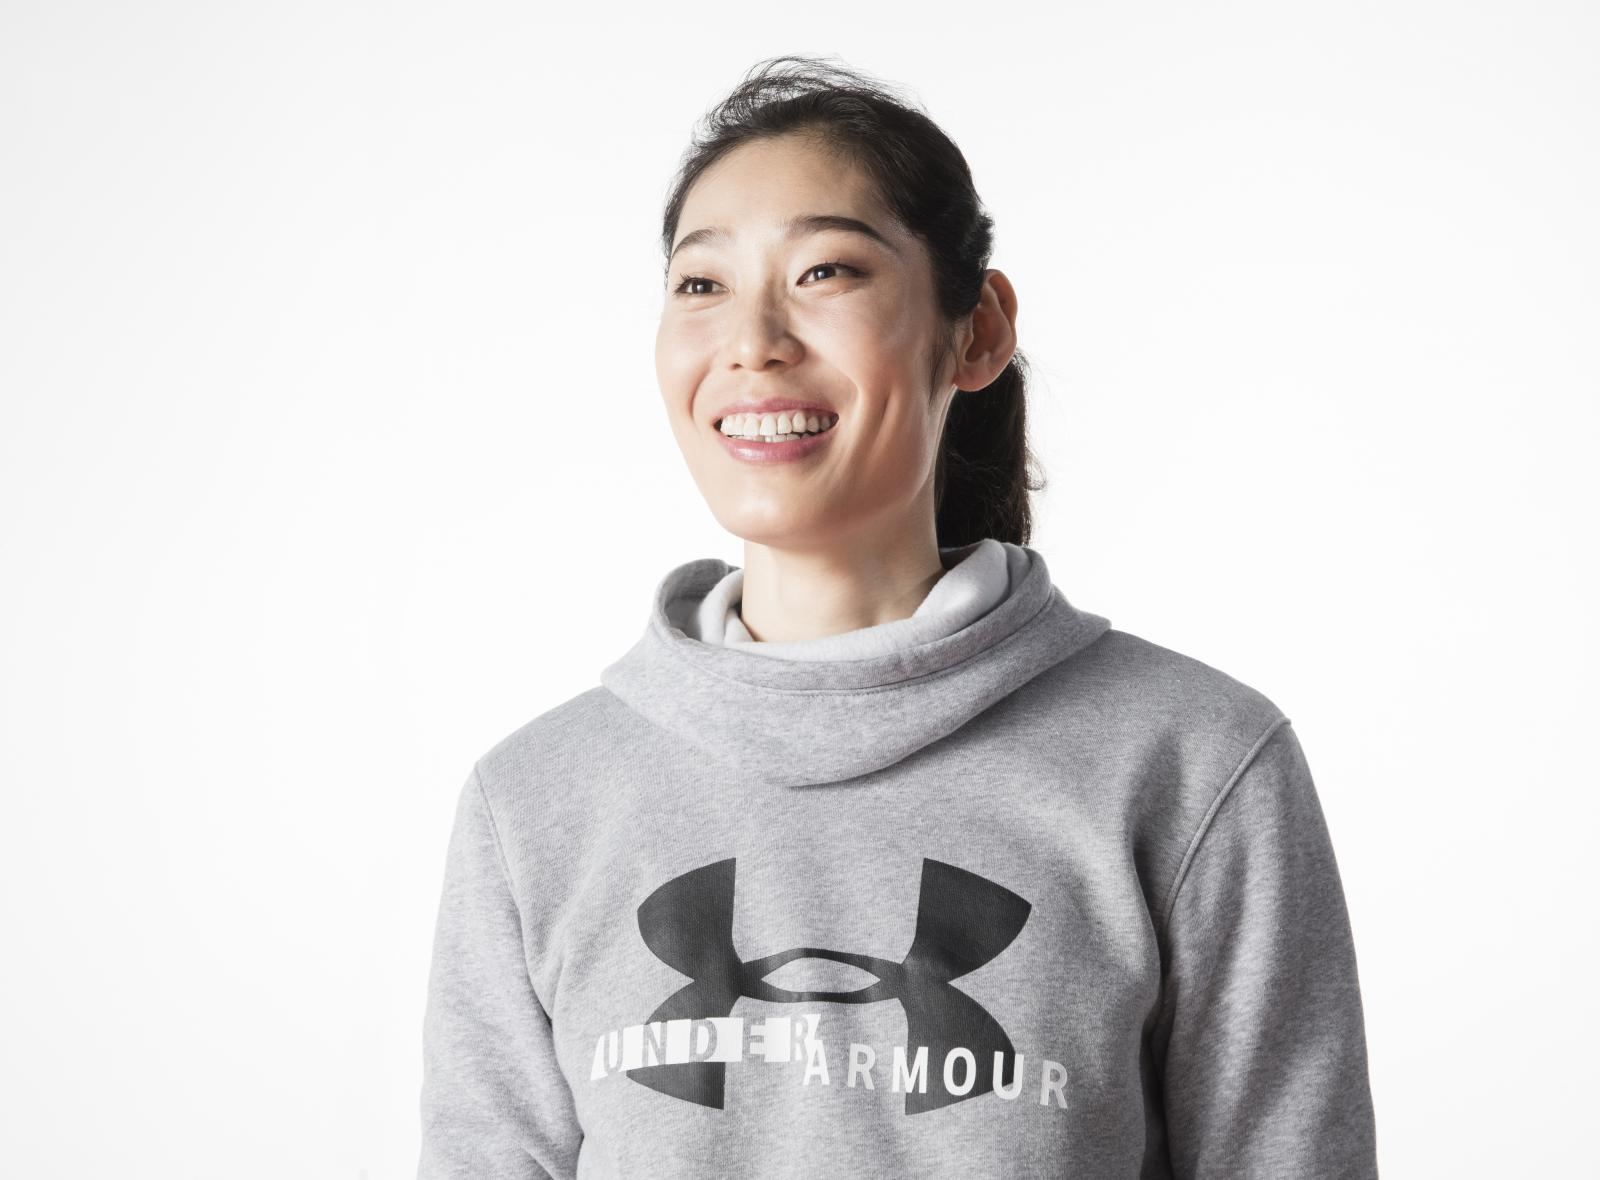 Volleyball phenom Zhu Ting, the No. 1 ranked player in the world, joins Under Armour's ranks of world champions and MVPs